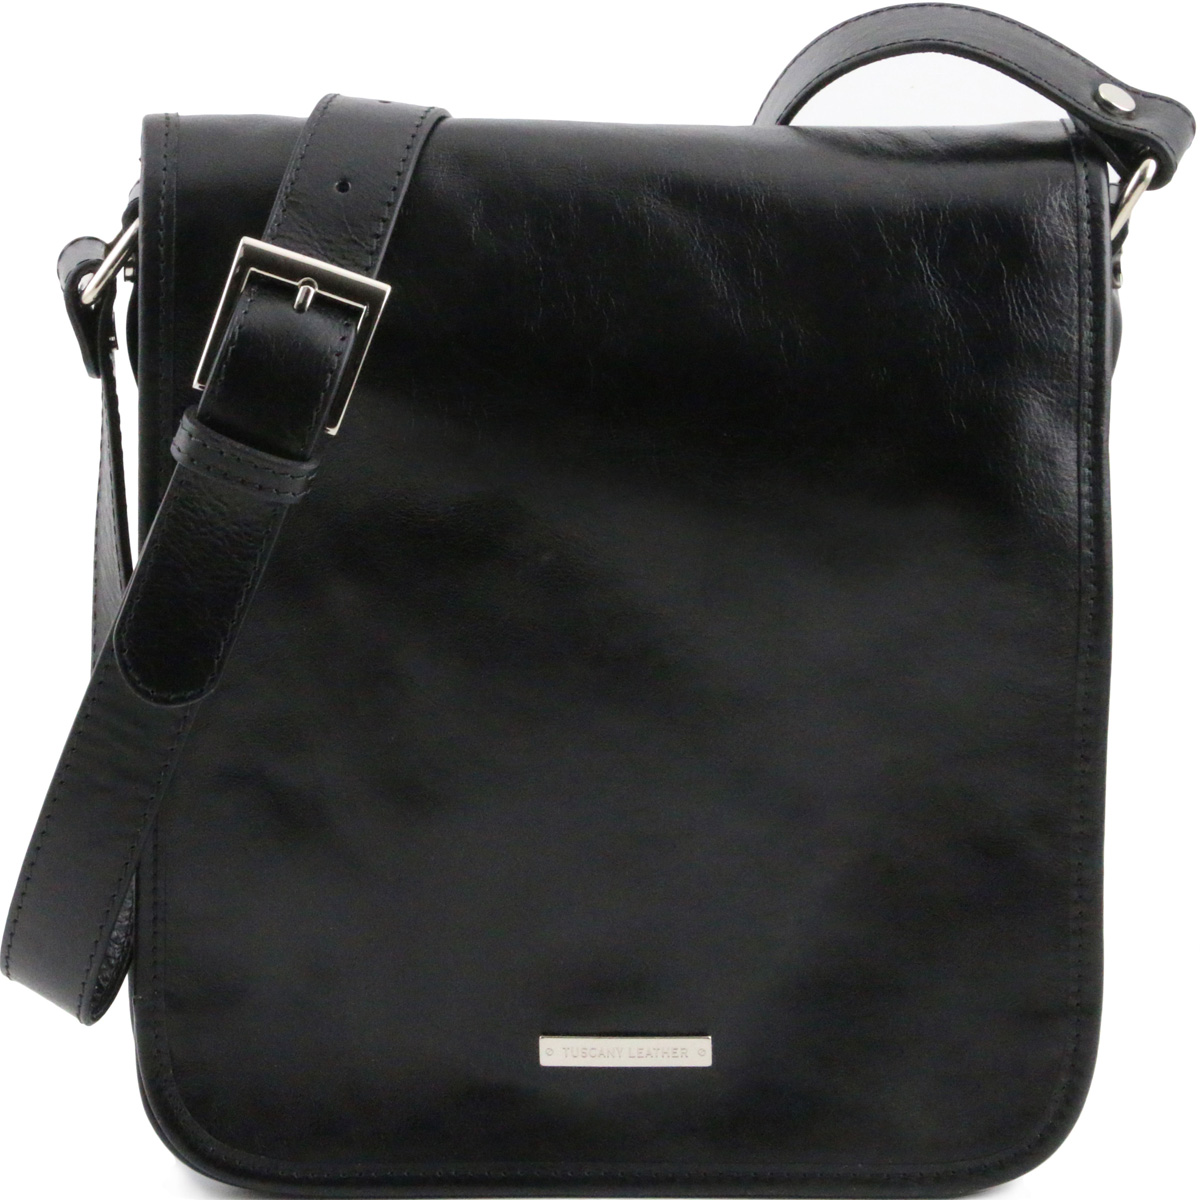 Tuscany Leather First Class, TL Messenger bag iPad väska 10